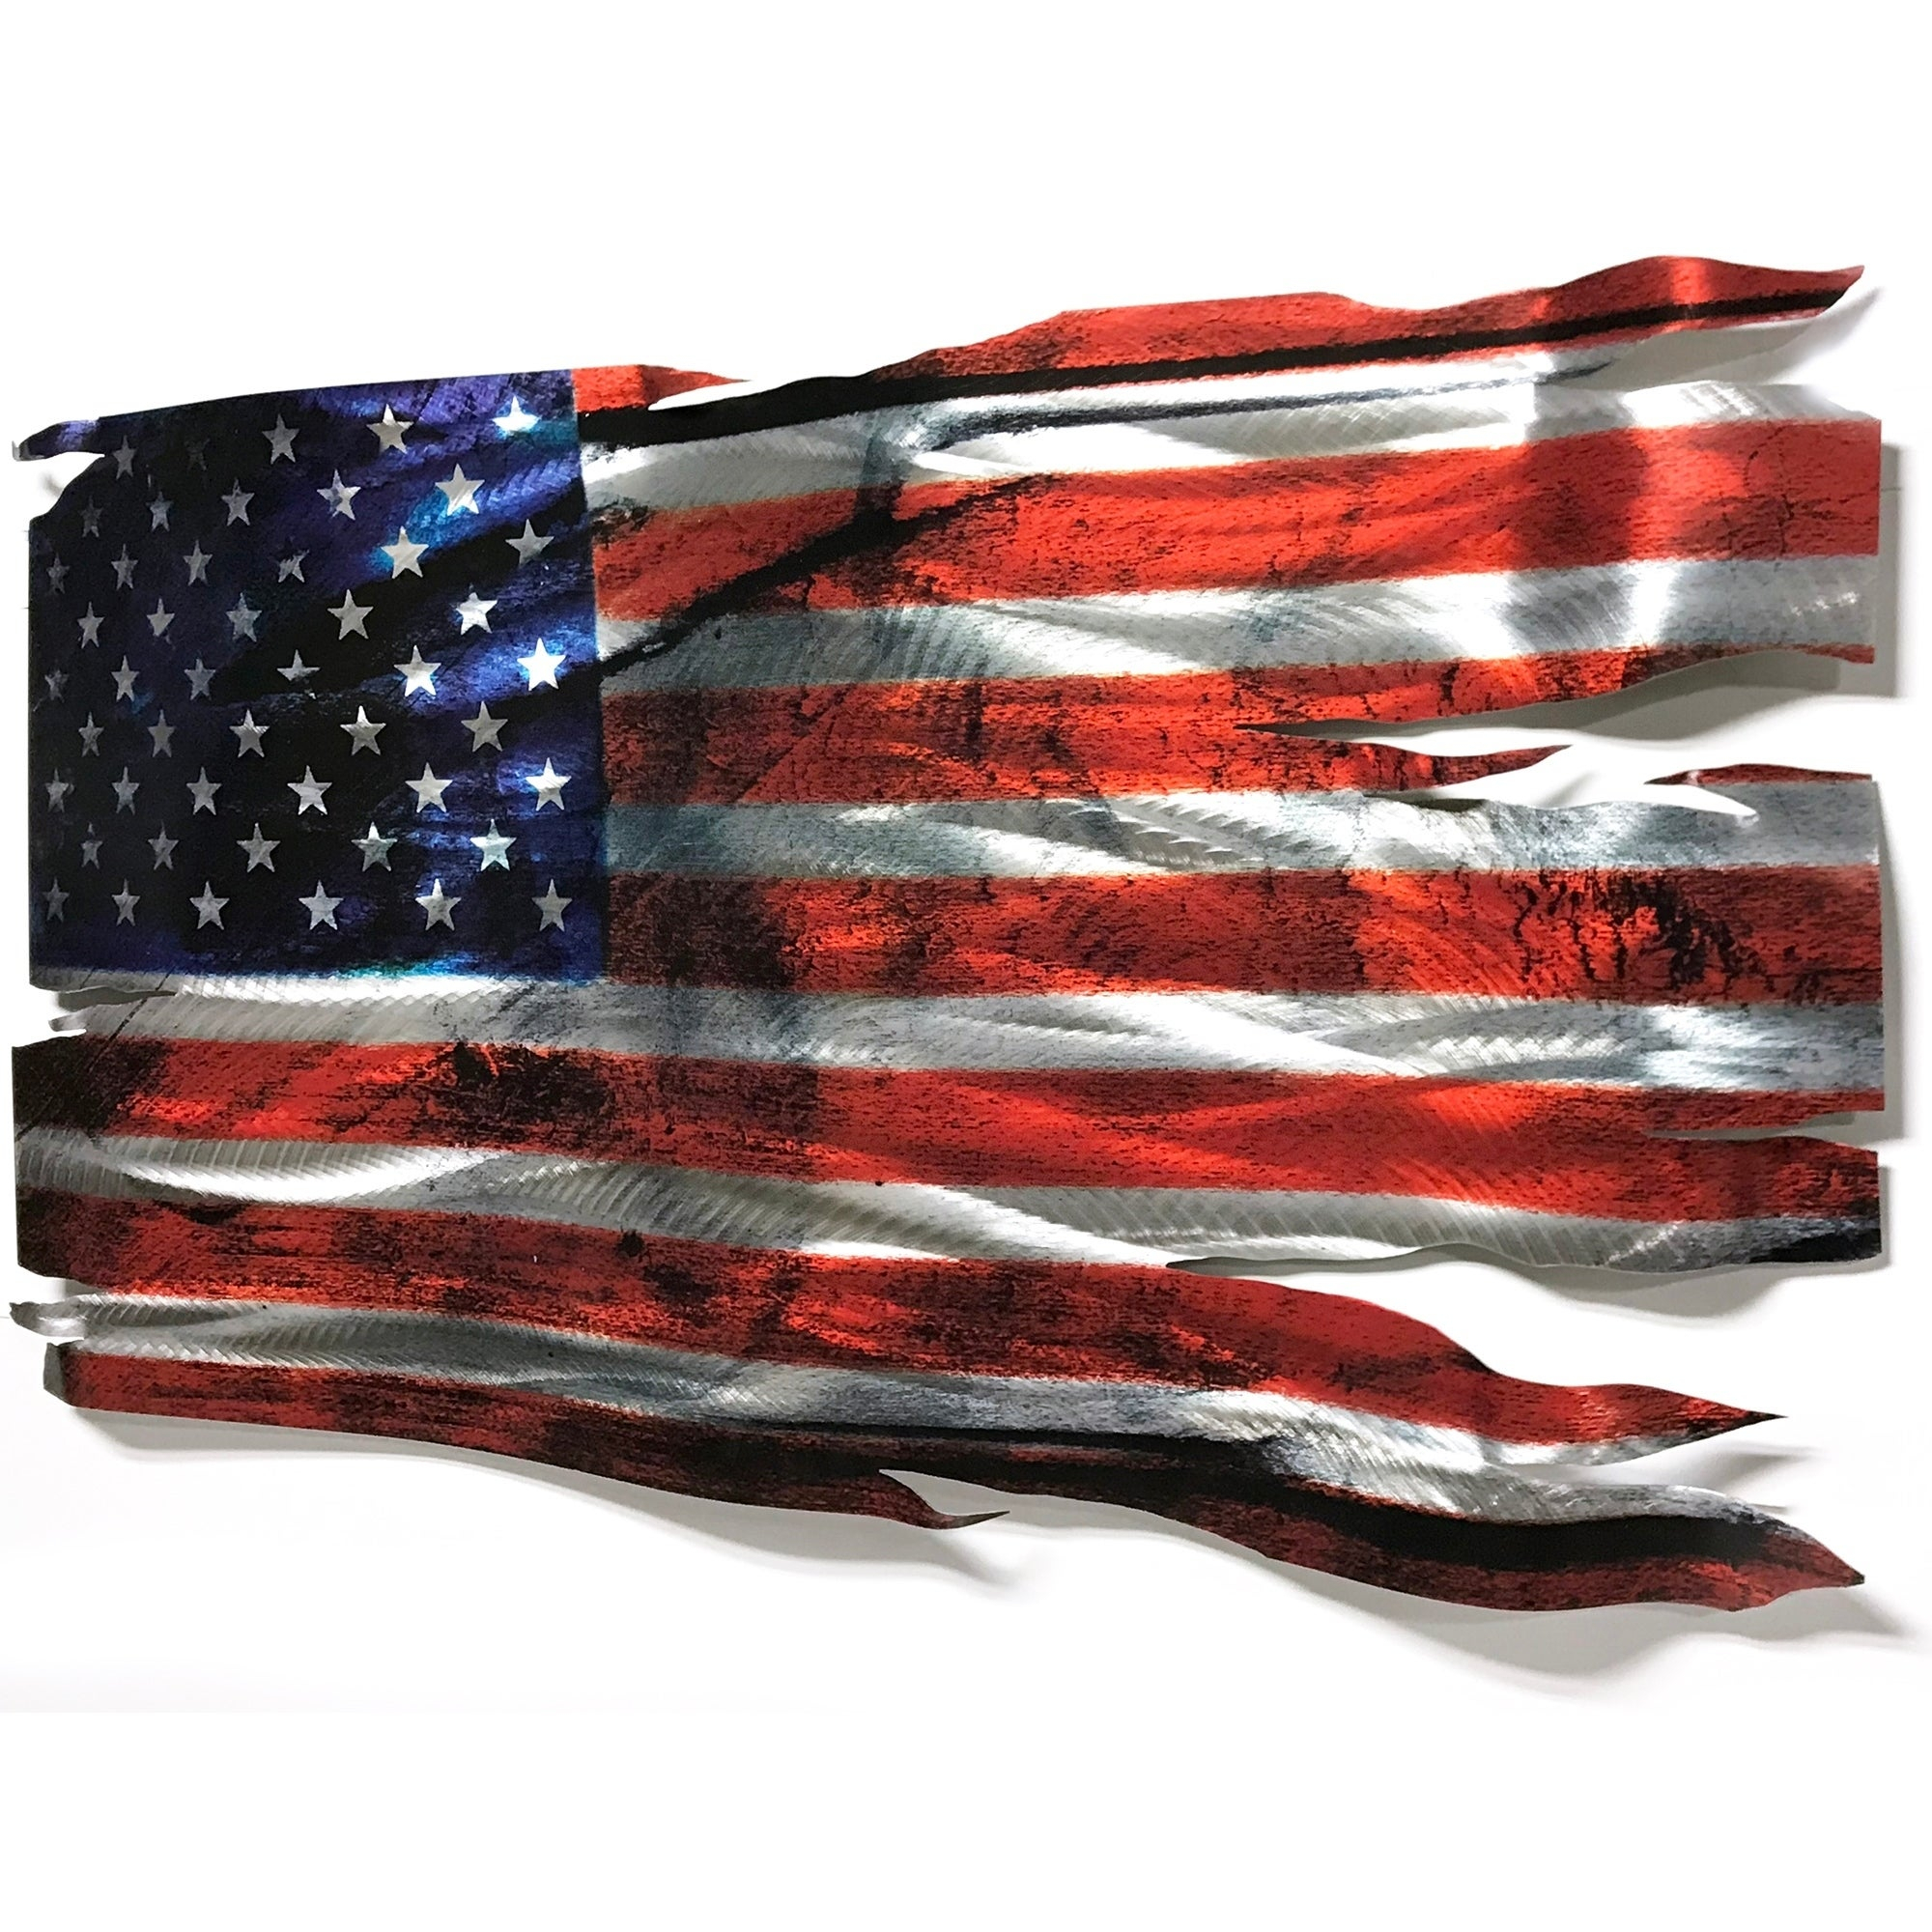 Helena Martin 'tattered Glory' 46In X 24In Large Metal American Flag Wall  Sculpture Inside American Flag 3D Wall Decor (Image 22 of 30)